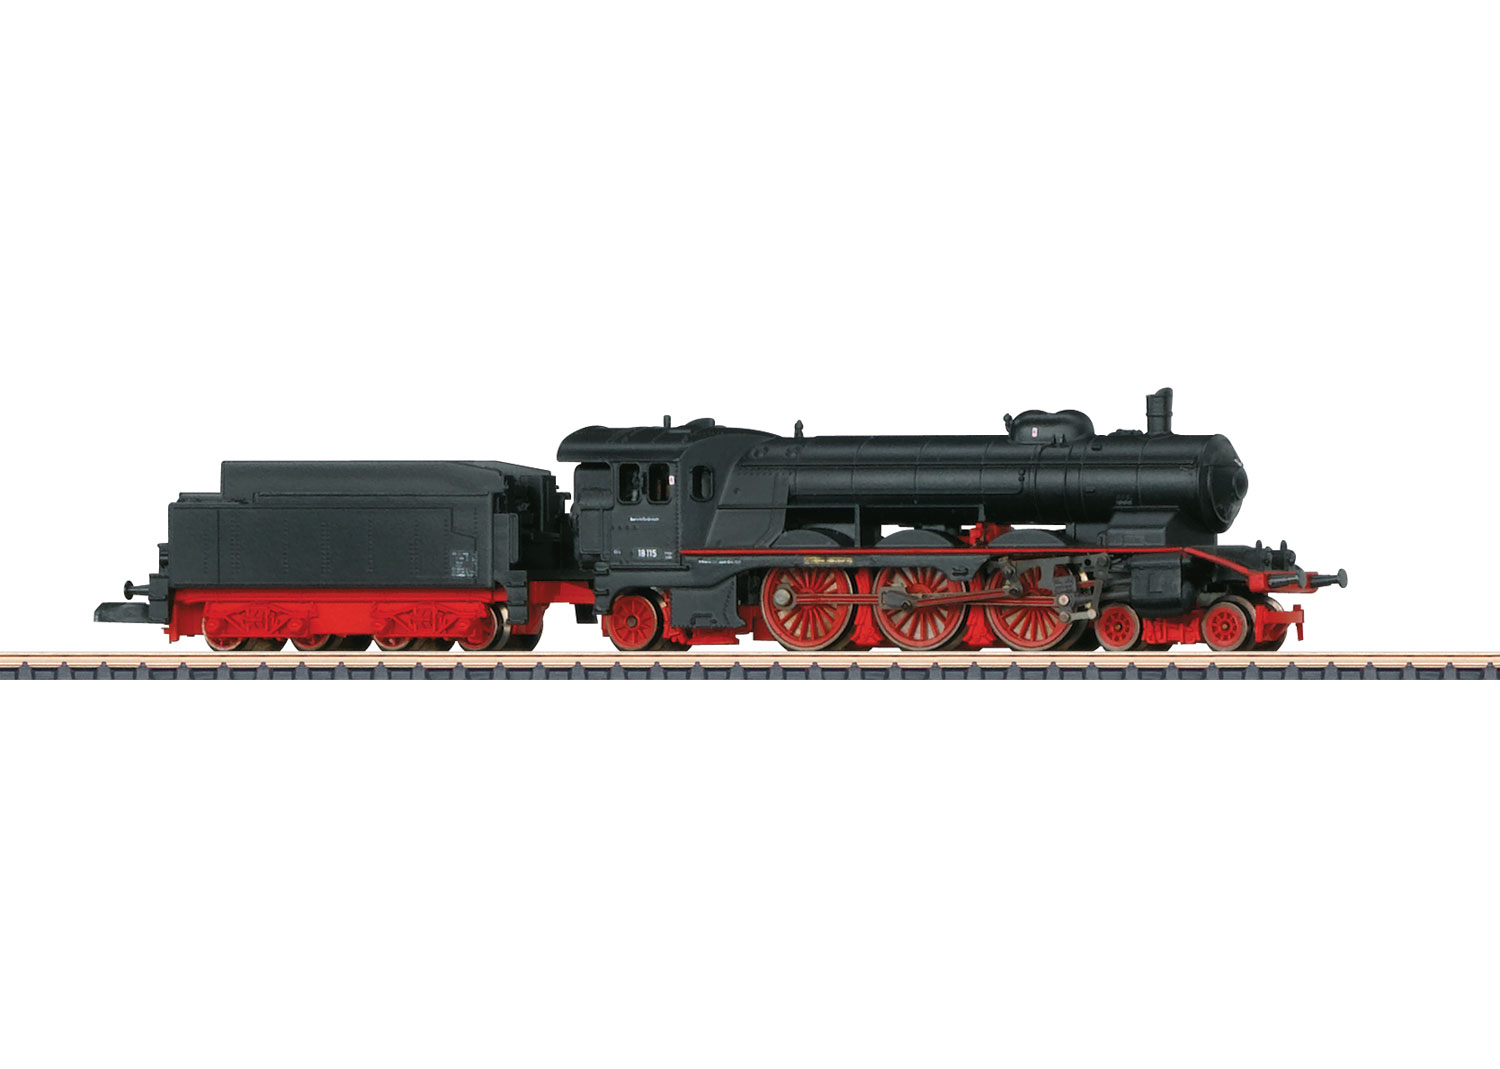 Express Locomotive with a Tender